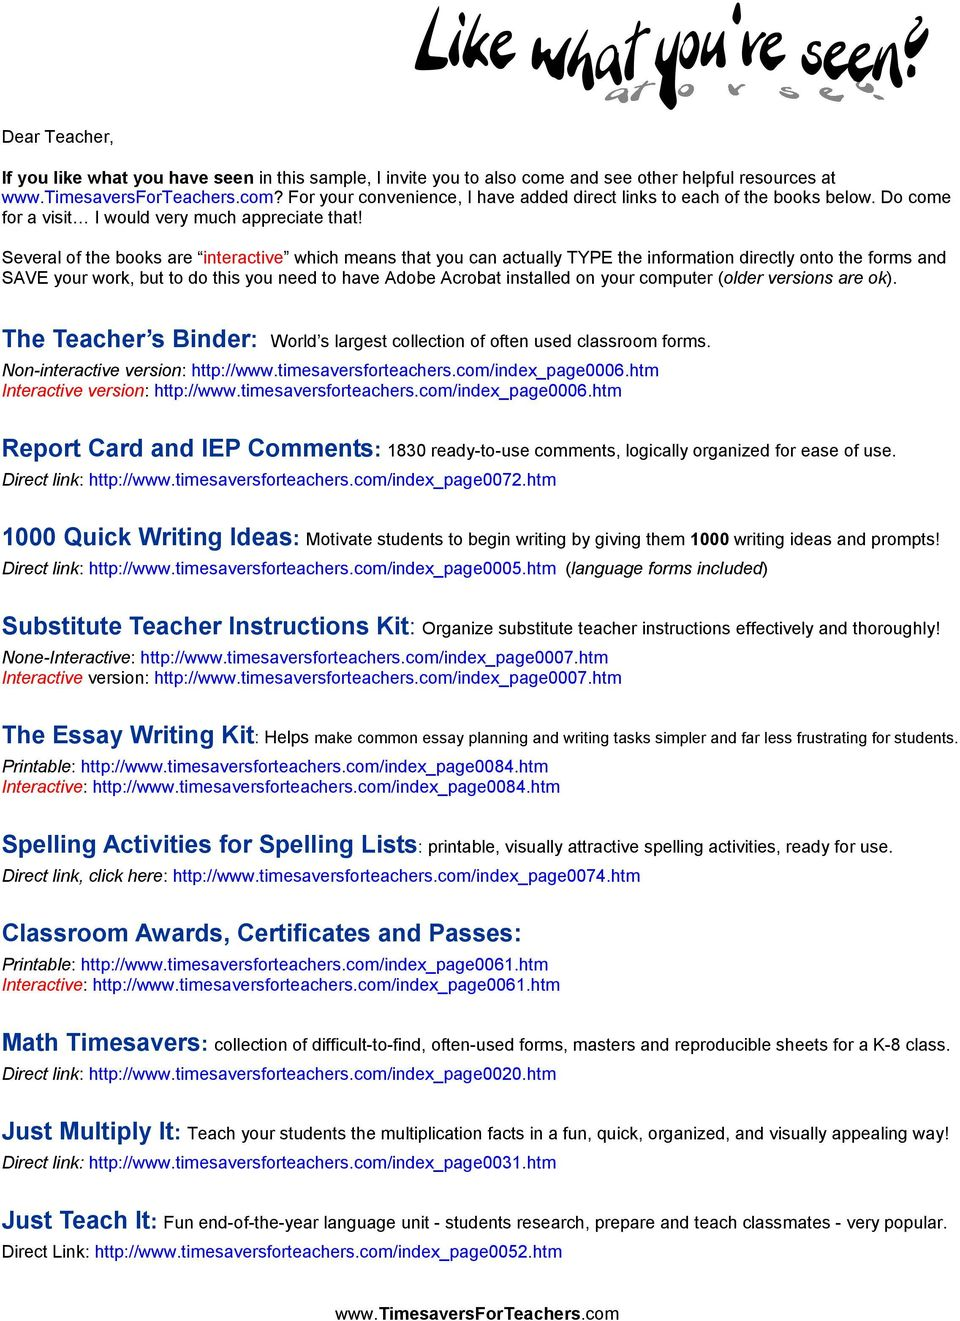 Several of the books are interactive which means that you can actually TYPE the information directly onto the forms and SAVE your work, but to do this you need to have Adobe Acrobat installed on your